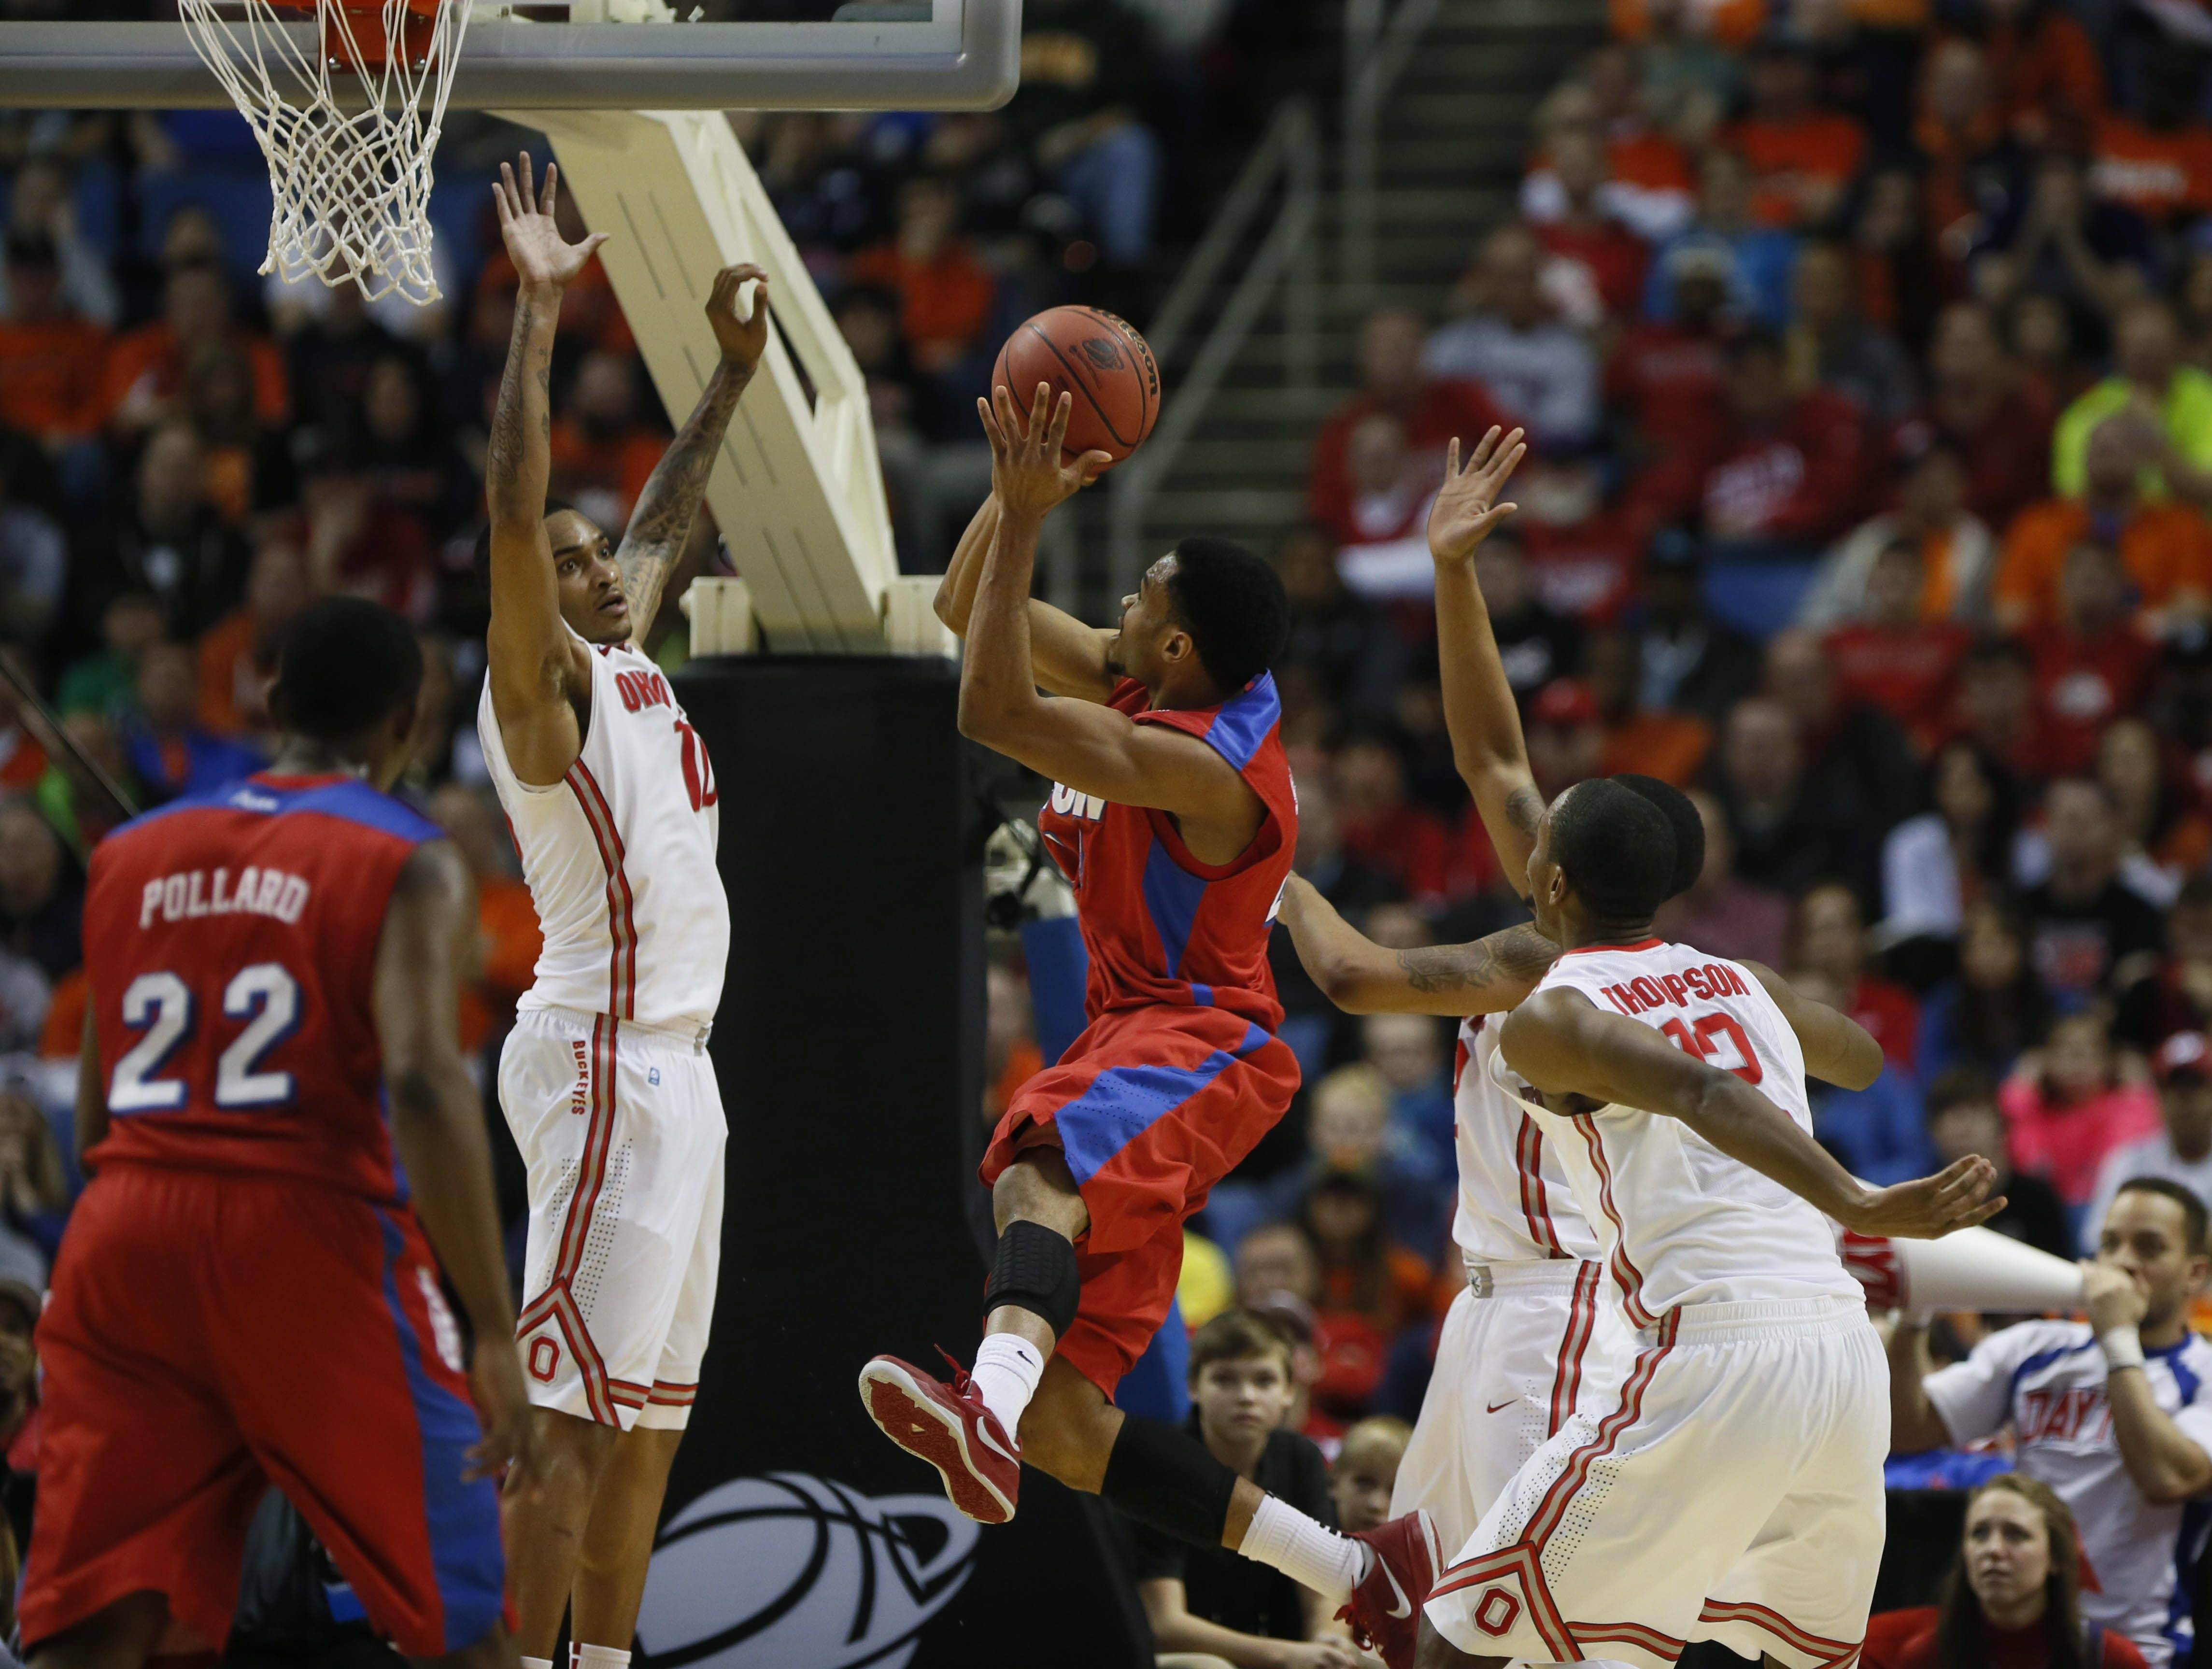 Dayton's Vee Sanford, center, puts up a shot against Ohio State during a second-round game of the NCAA college basketball tournament in Buffalo, N.Y., Thursday, March 20, 2014. (AP Photo/The Buffalo News, Robert Kirkham) TV OUT; MAGS OUT; MANDATORY CREDIT; BATAVIA DAILY NEWS OUT; DUNKIRK OBSERVER OUT; JAMESTOWN POST-JOURNAL OUT; LOCKPORT UNION-SUN JOURNAL OUT; NIAGARA GAZETTE OUT; OLEAN TIMES-HERALD OUT; SALAMANCA PRESS OUT; TONAWANDA NEWS OUT